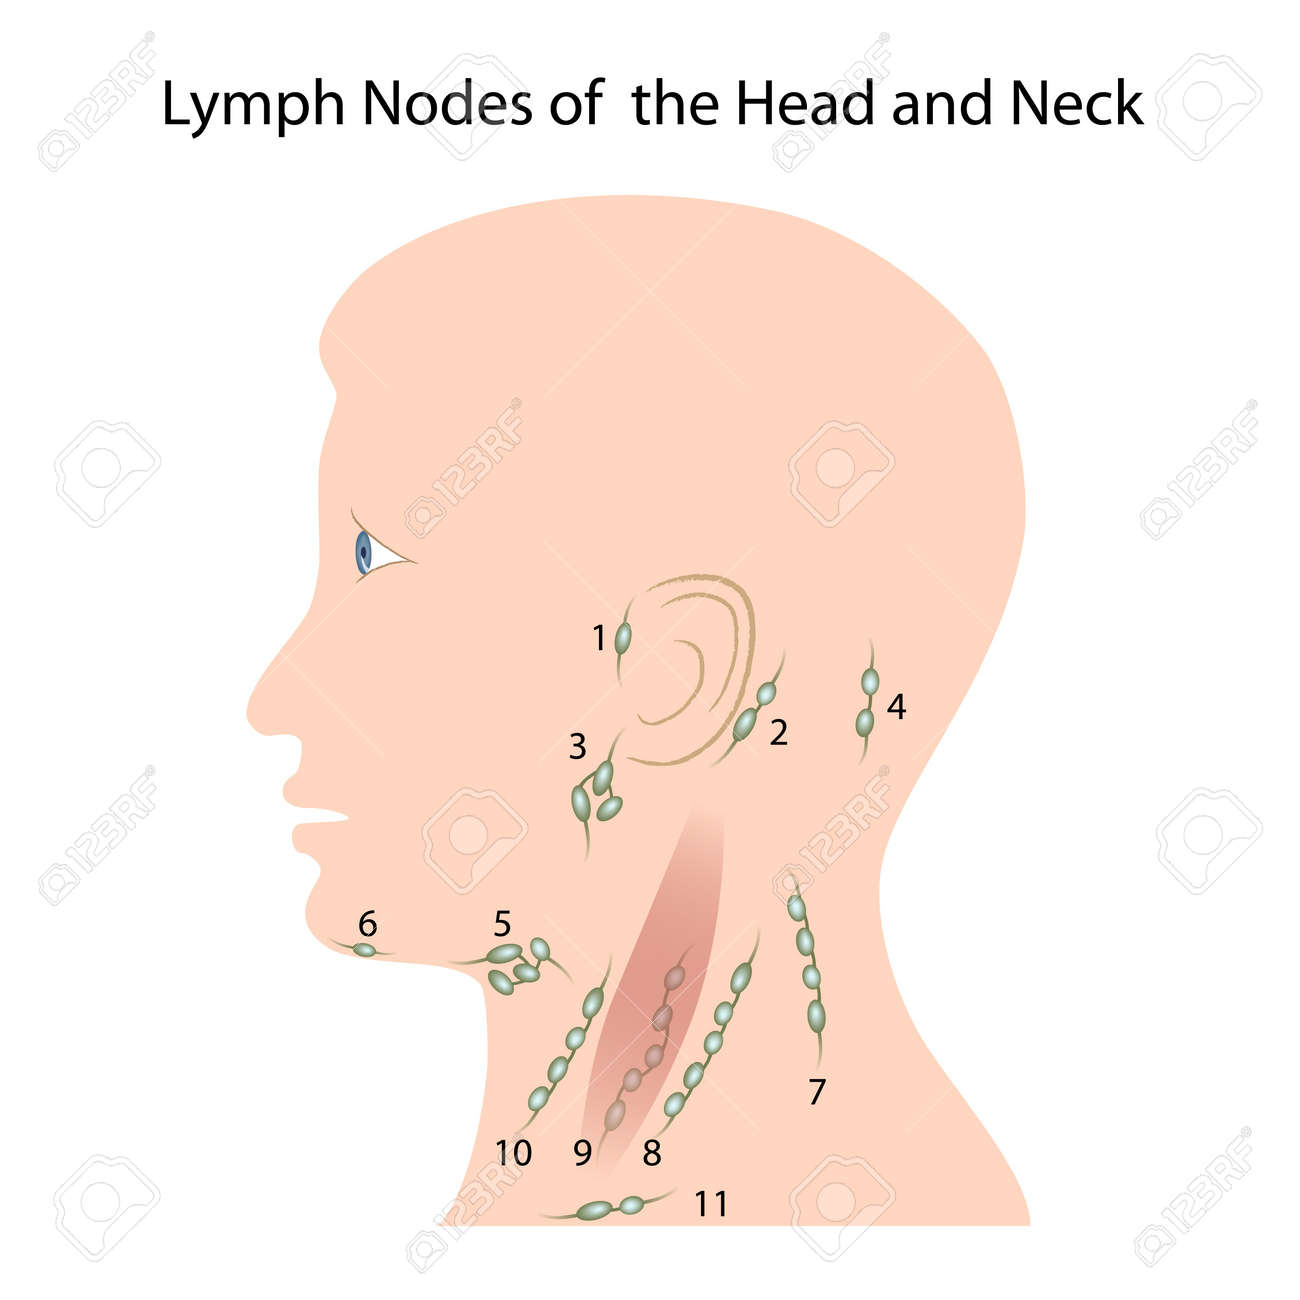 Lymph nodes of the head and neck royalty free cliparts vectors and lymph nodes of the head and neck stock vector 13281690 ccuart Gallery